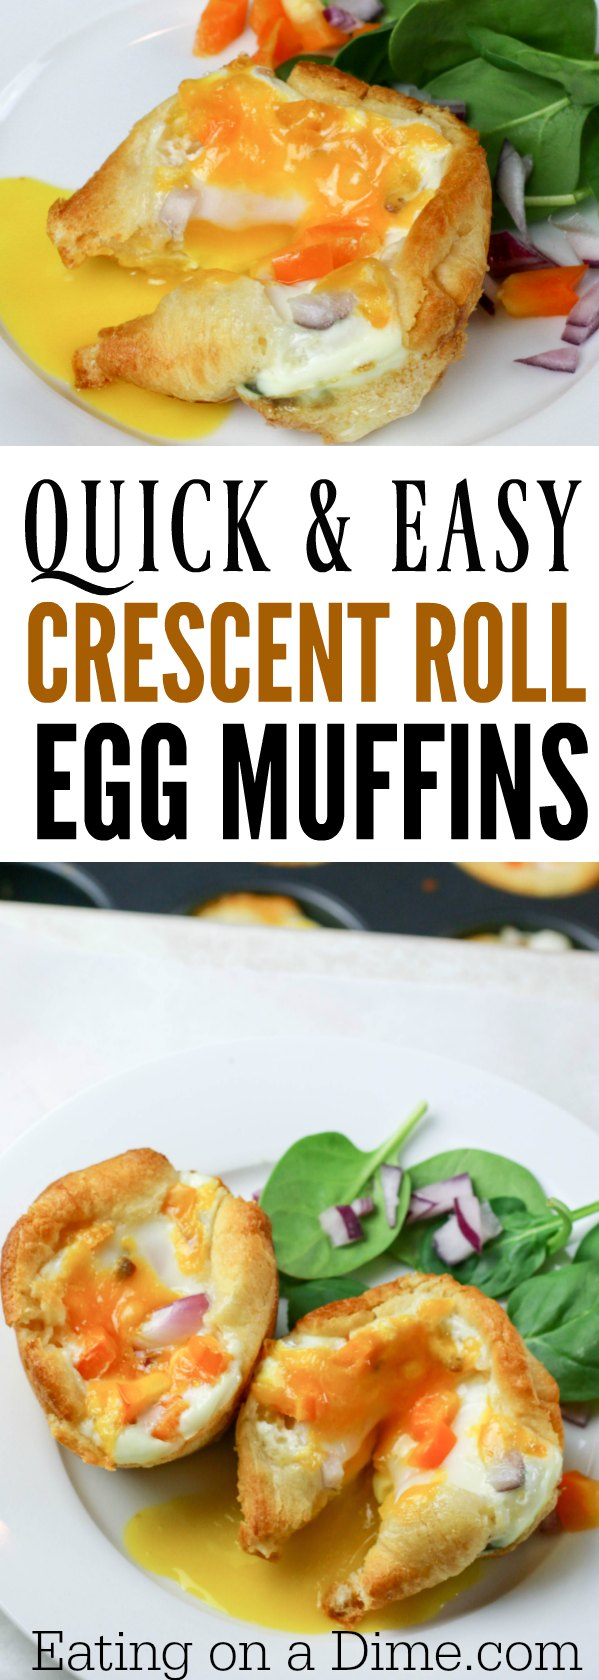 Breakfast egg muffins recipe. This super easy egg muffin cups can be made quickly any day of the week. These healthy egg muffins are delicious.